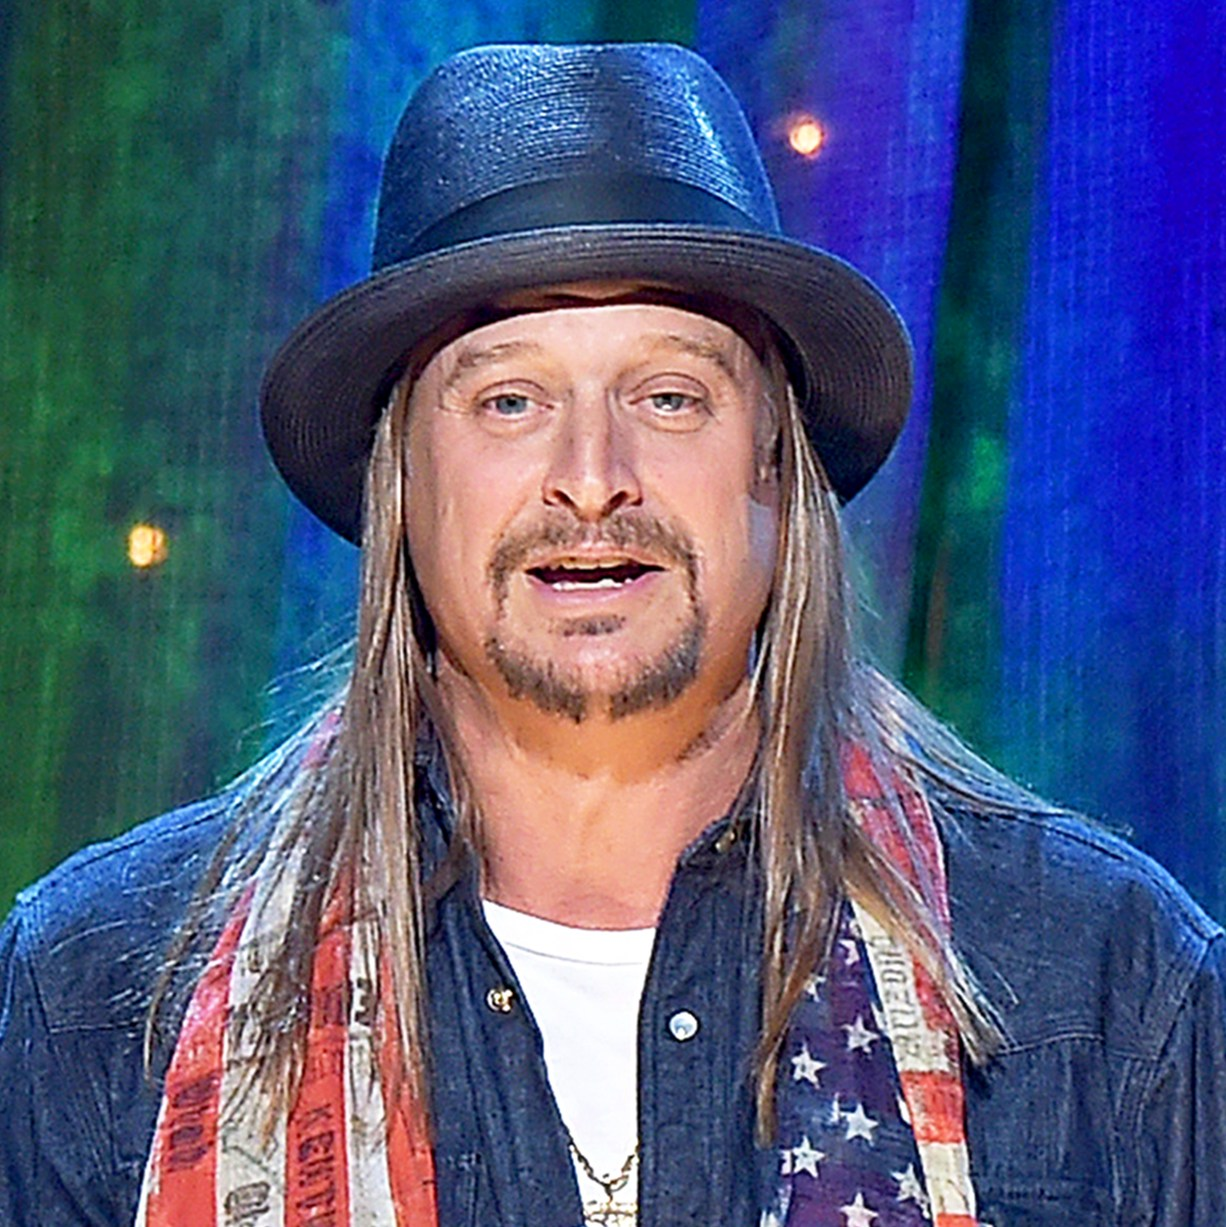 Kid Rock attend the 31st Annual Rock And Roll Hall Of Fame Induction Ceremony at Barclays Center on April 8, 2016 in New York City.